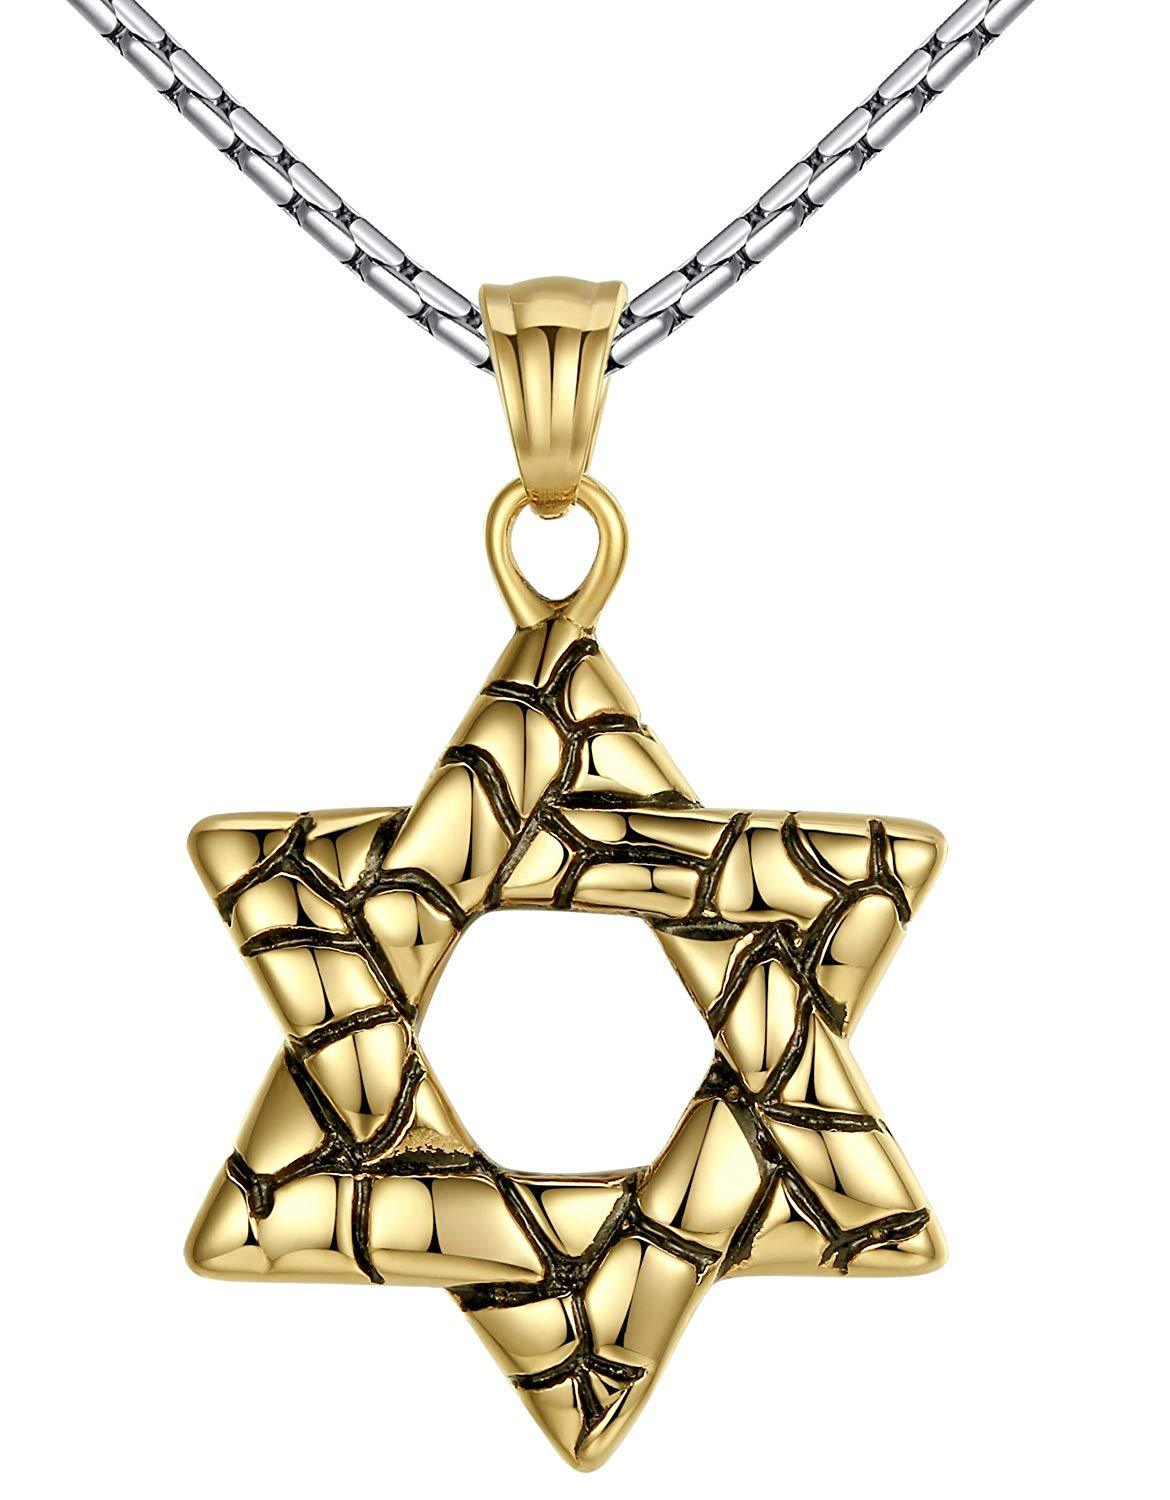 "Aoiy Men's Stainless Steel Star of David Pendant Necklace, 23"" Link Chain, hhp021ji"